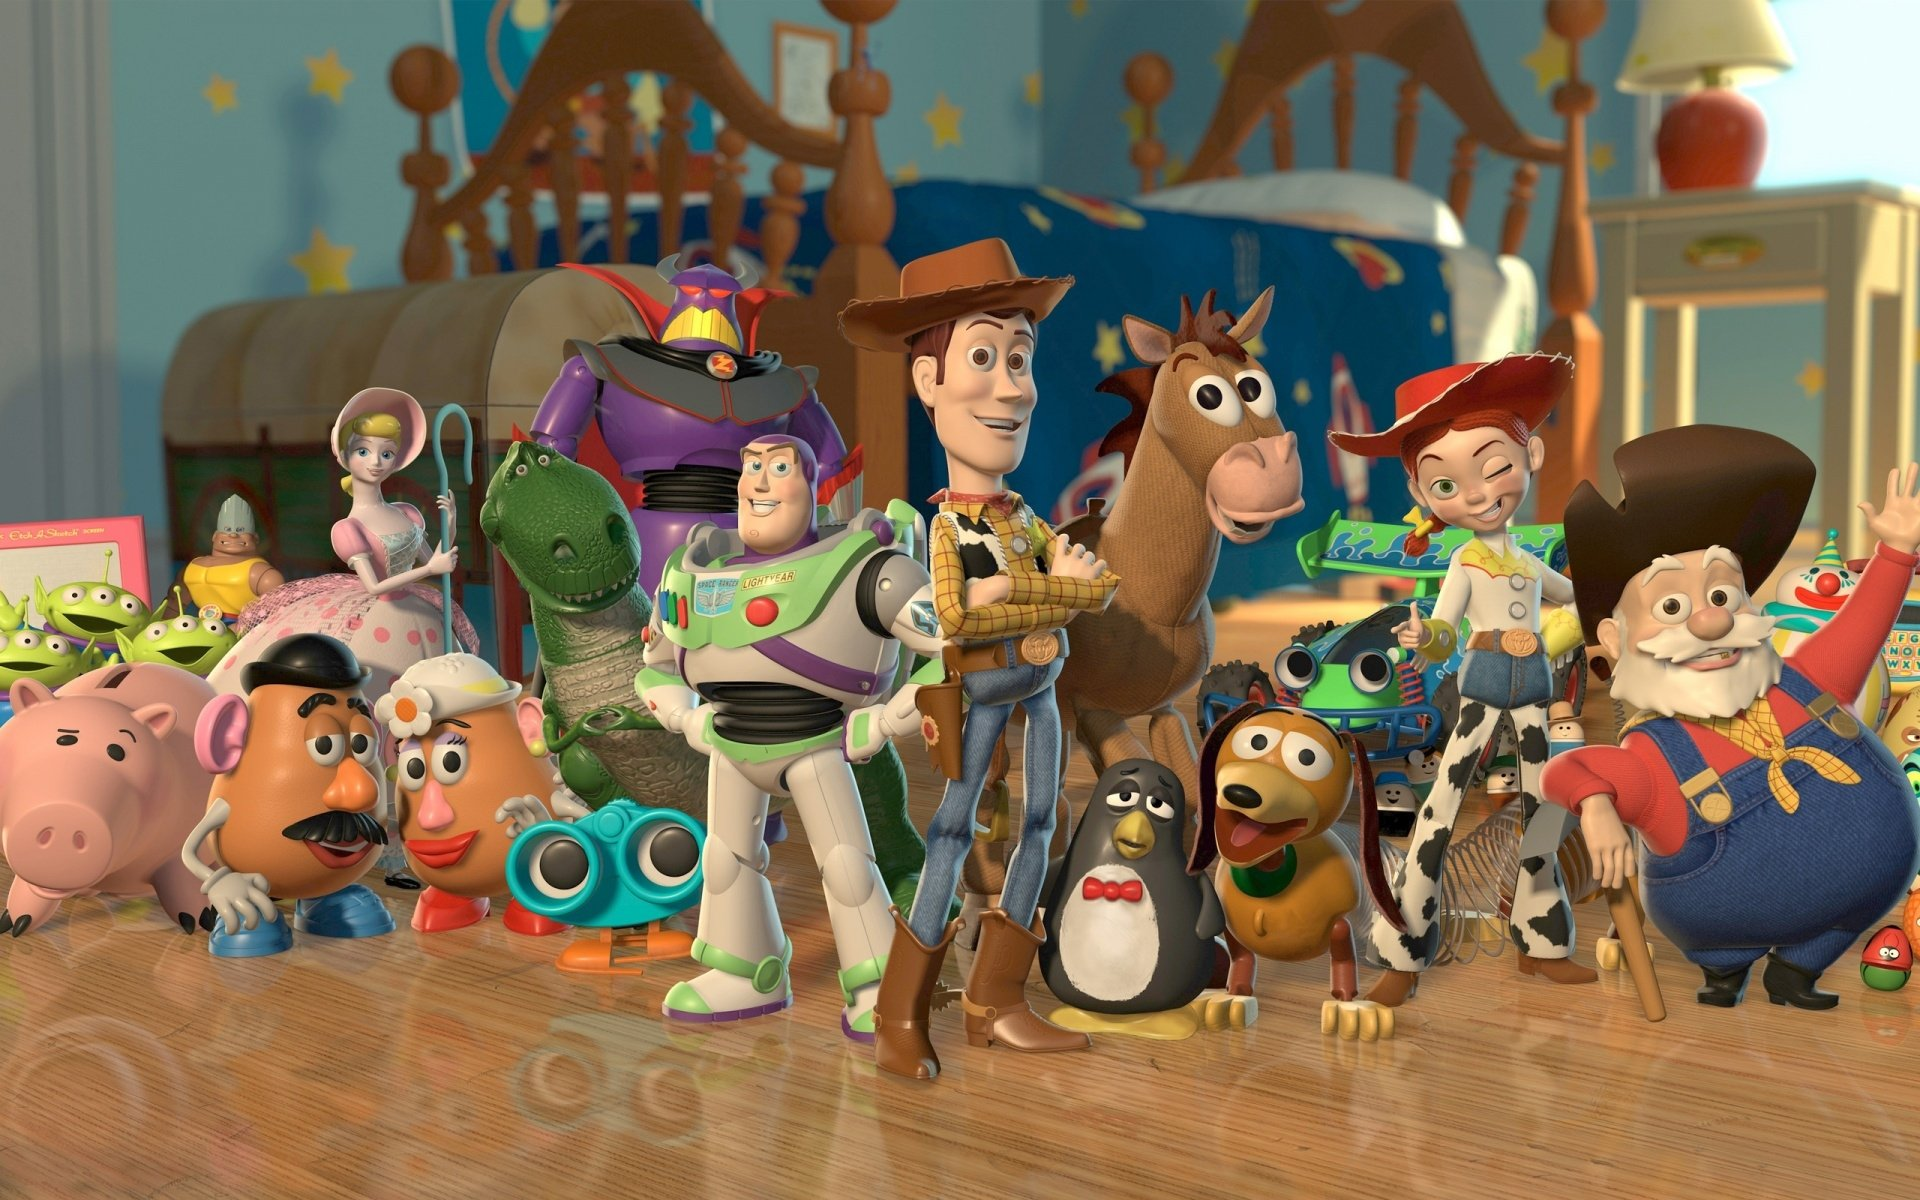 123 Toy Story Hd Wallpapers Background Images Wallpaper